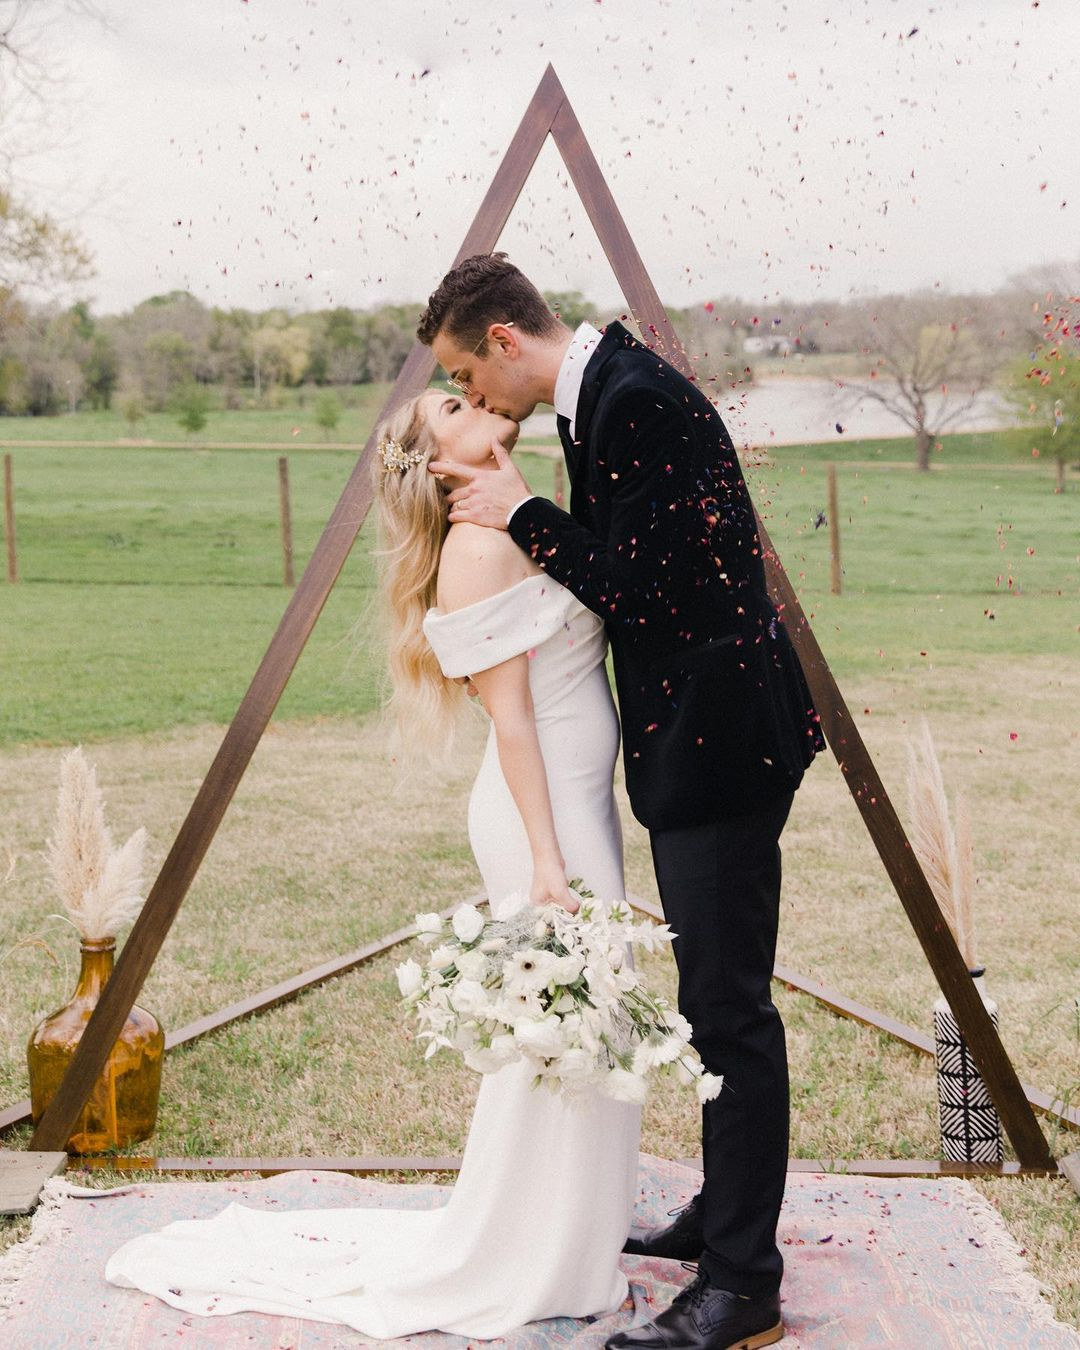 How to Include Guests from Afar: 7 Virtual Wedding Ideas